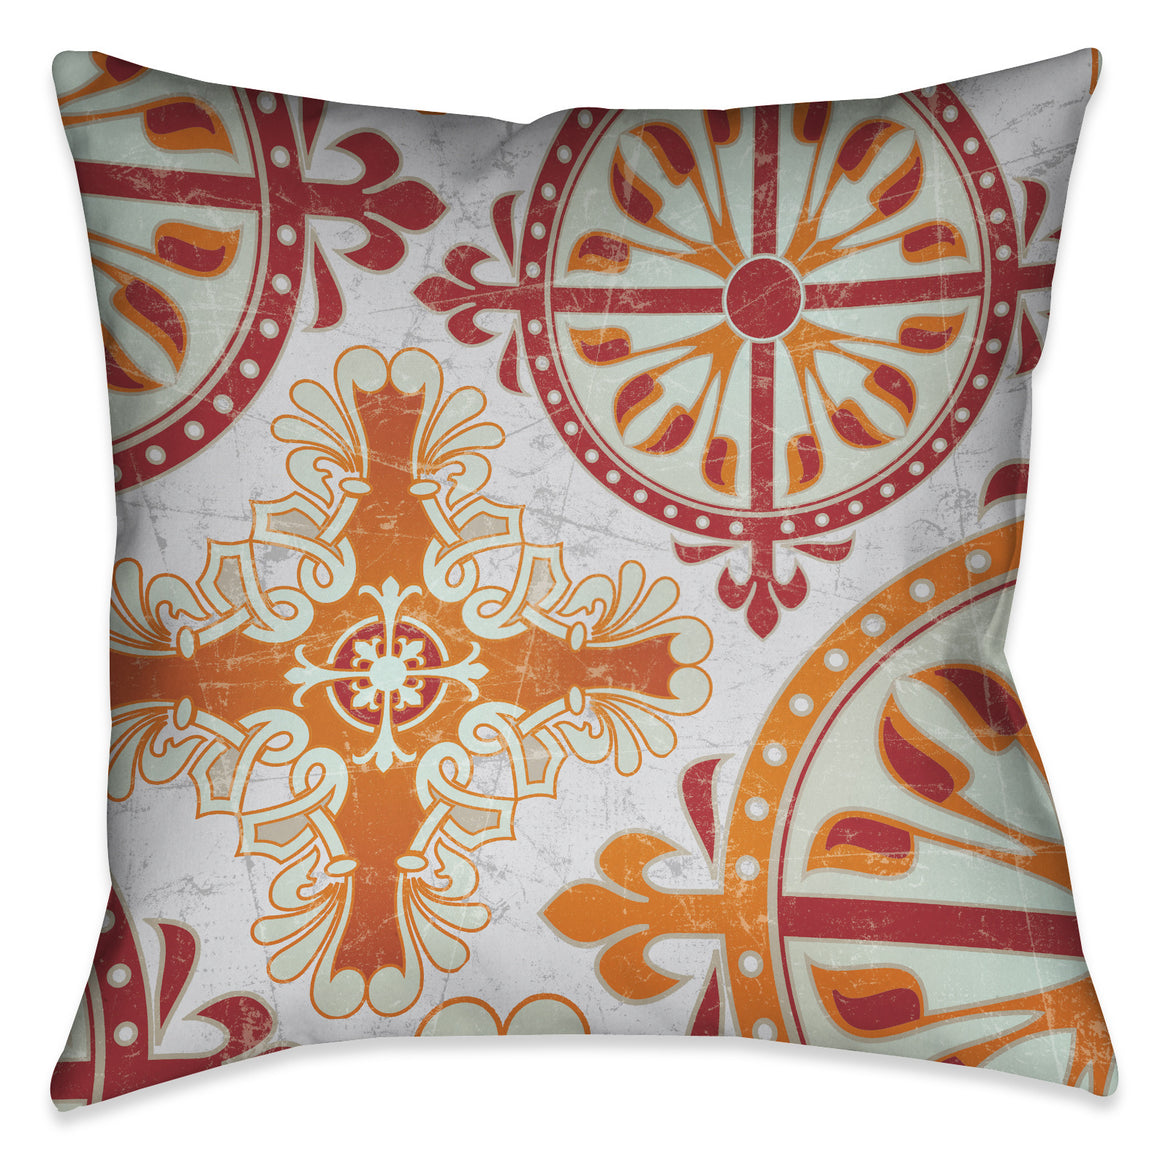 Medieval Persimmon Pillow II